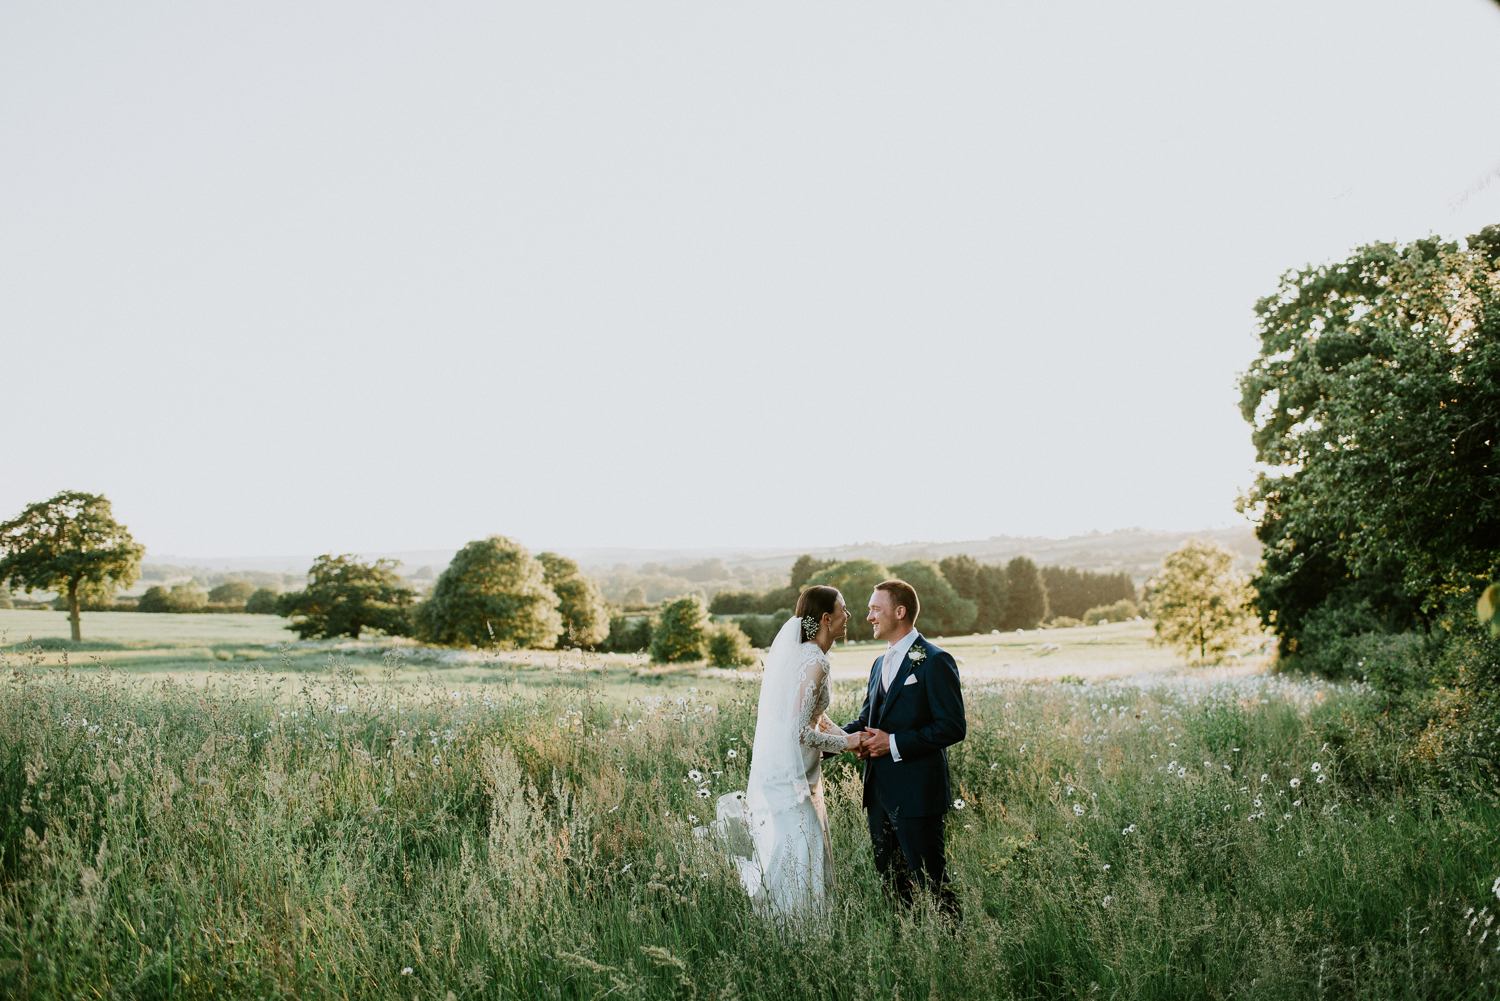 Bride and Groom portrait of a giggle in the middle of a sunset lit countryside field. These two had an intimate wedding celebration in rural Warwickshire.